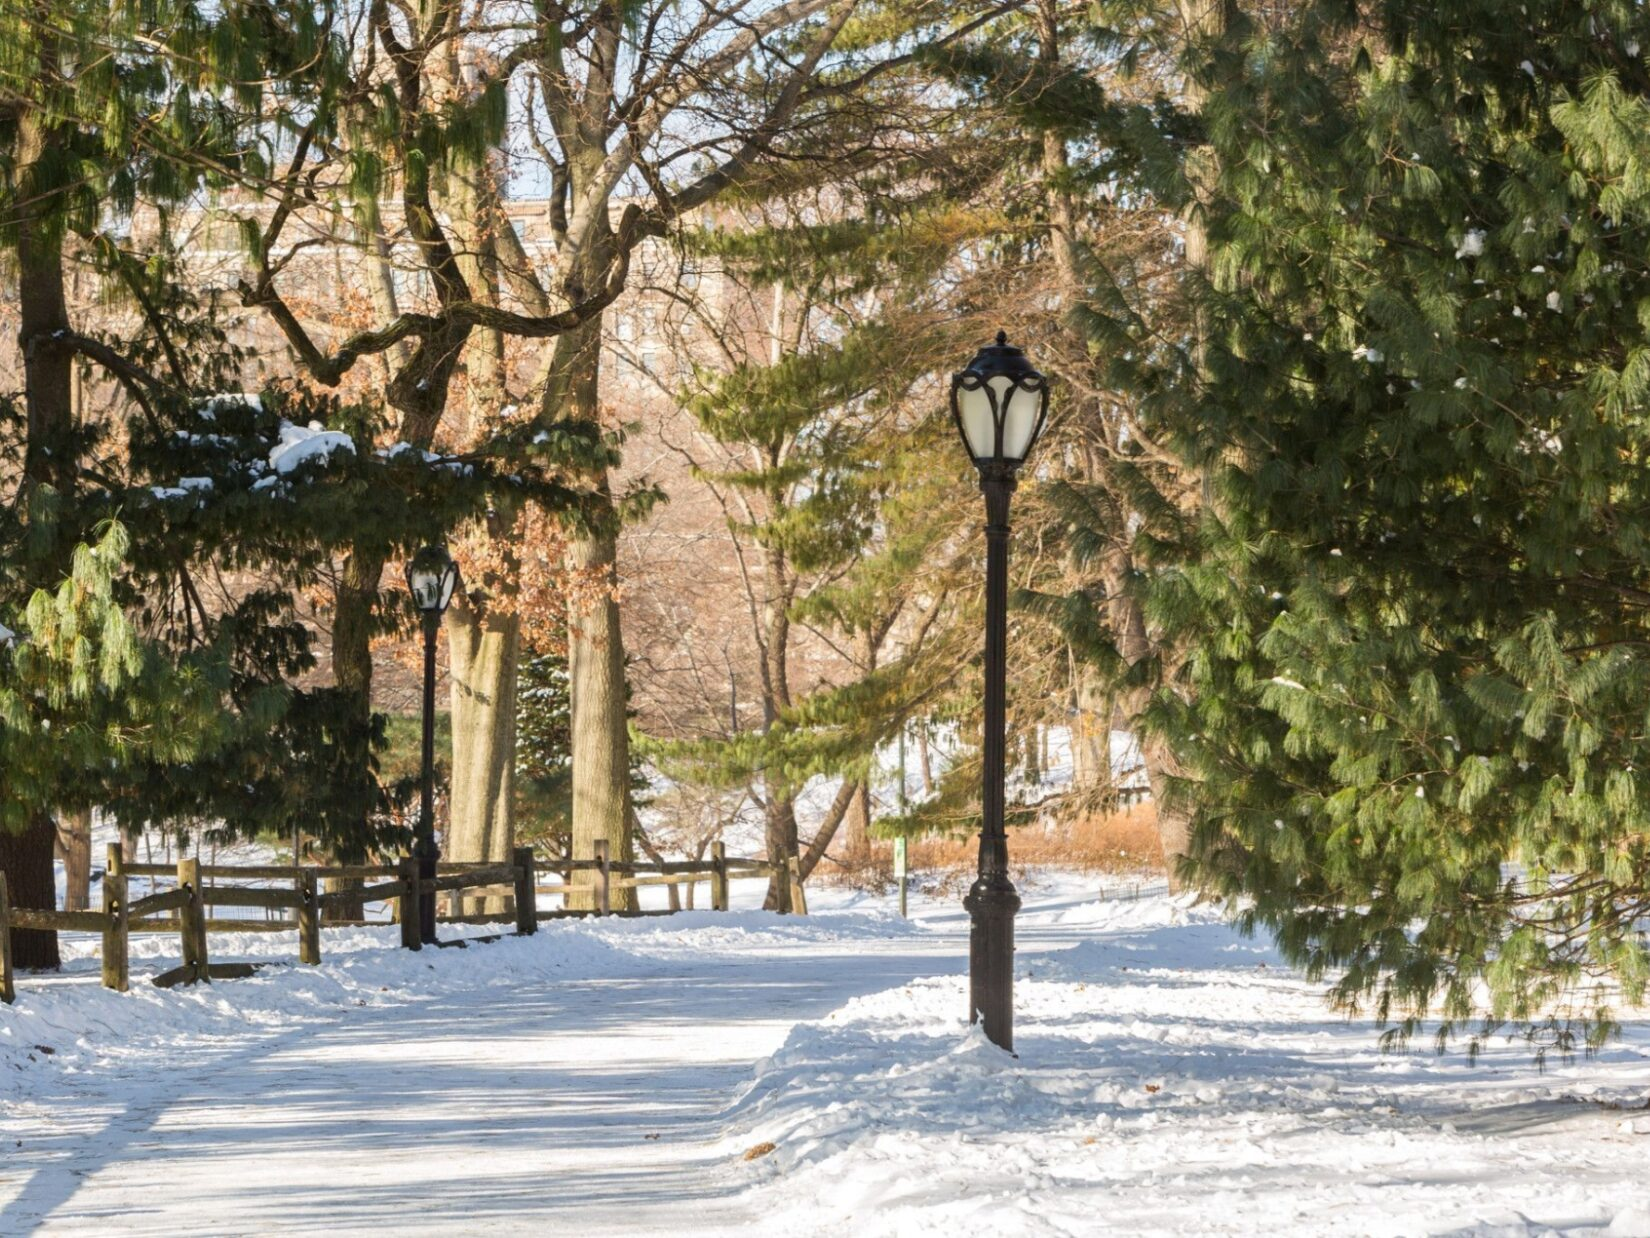 A path is cleared through a snow-blanketed landscape of pine trees